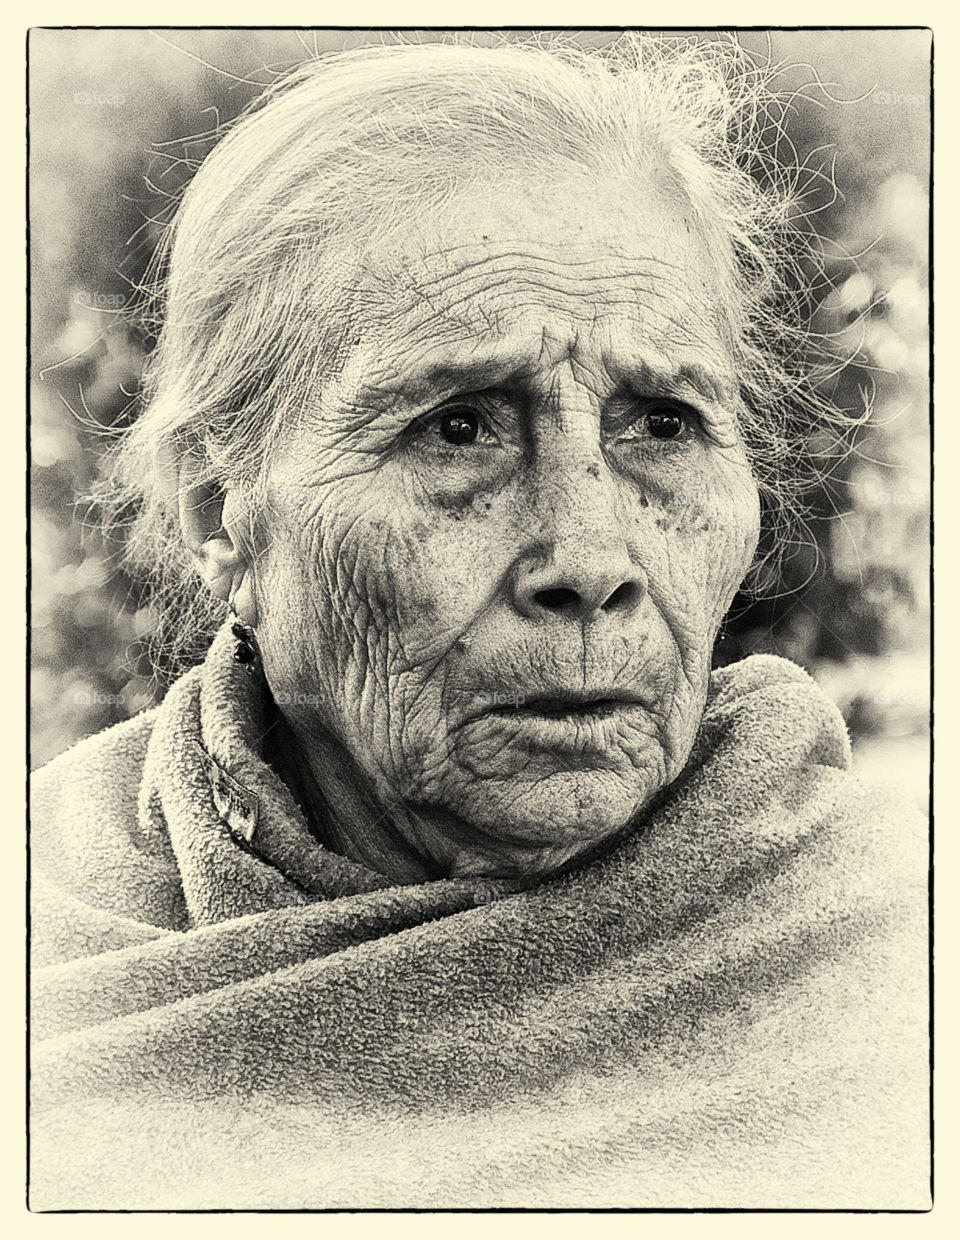 mexico wrinkles lady portait by resnikoffdavid